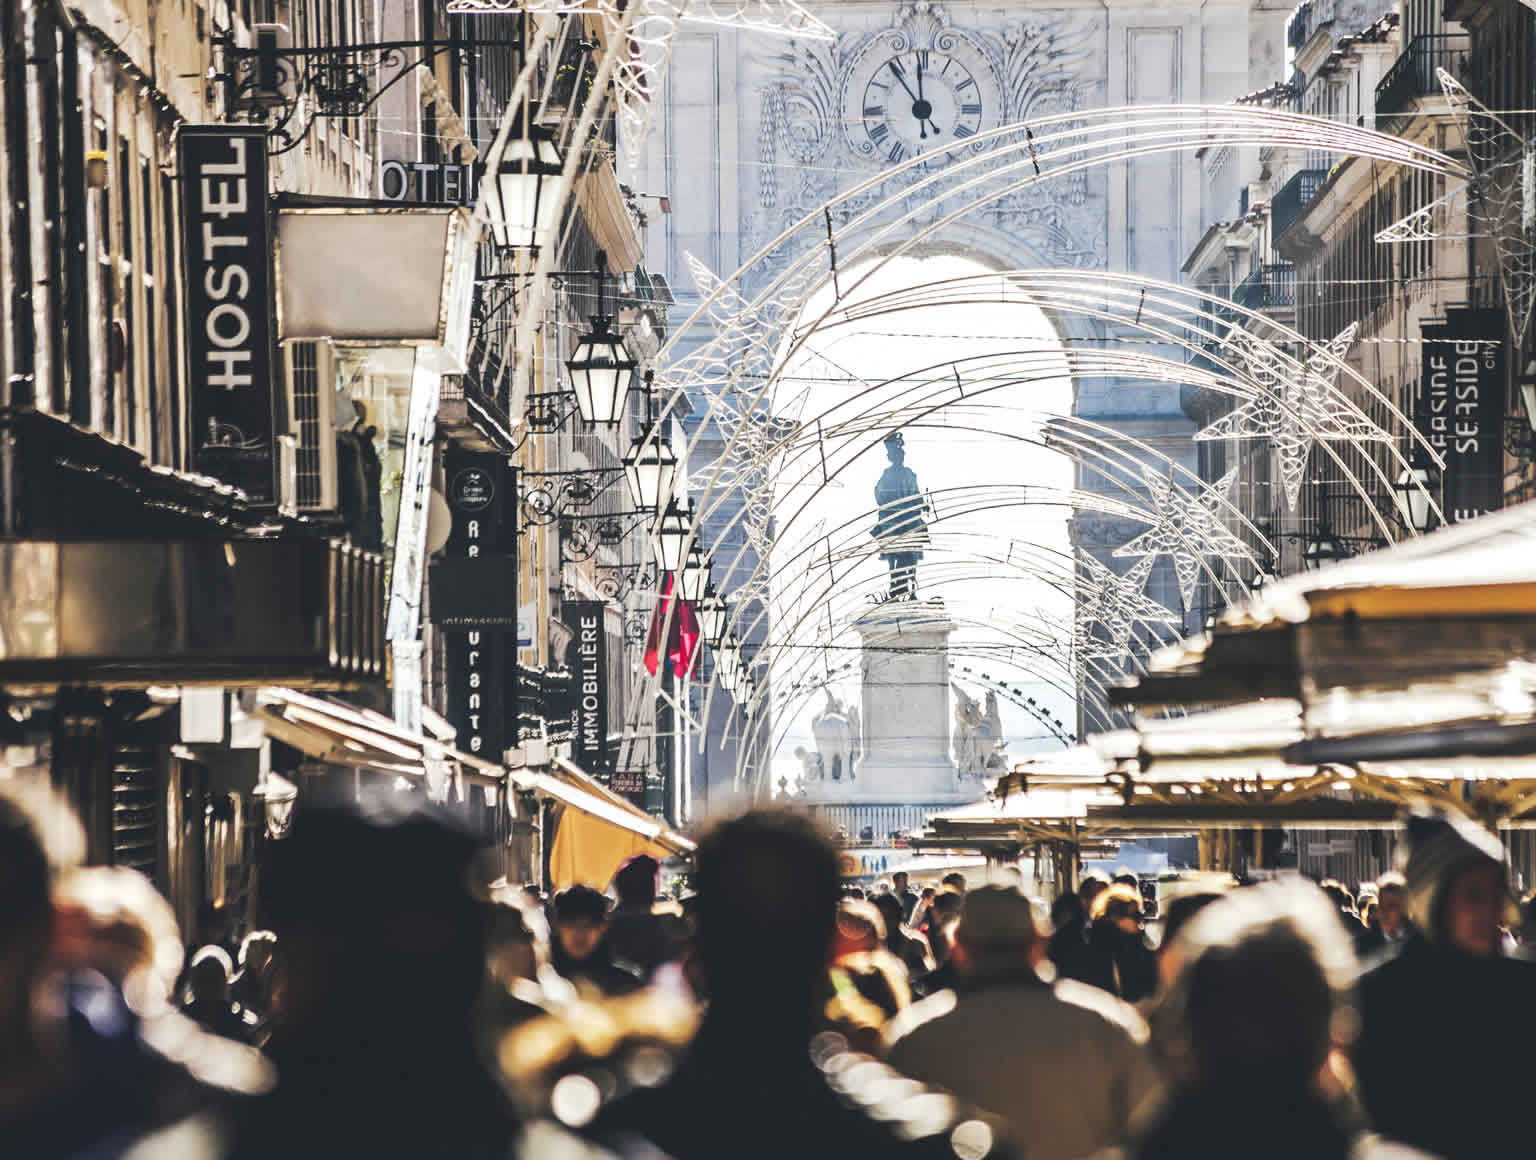 Crowded main street in Baixa, Lisbon, Portugal. Shops, people, and a statue under an arch with an ornate clock